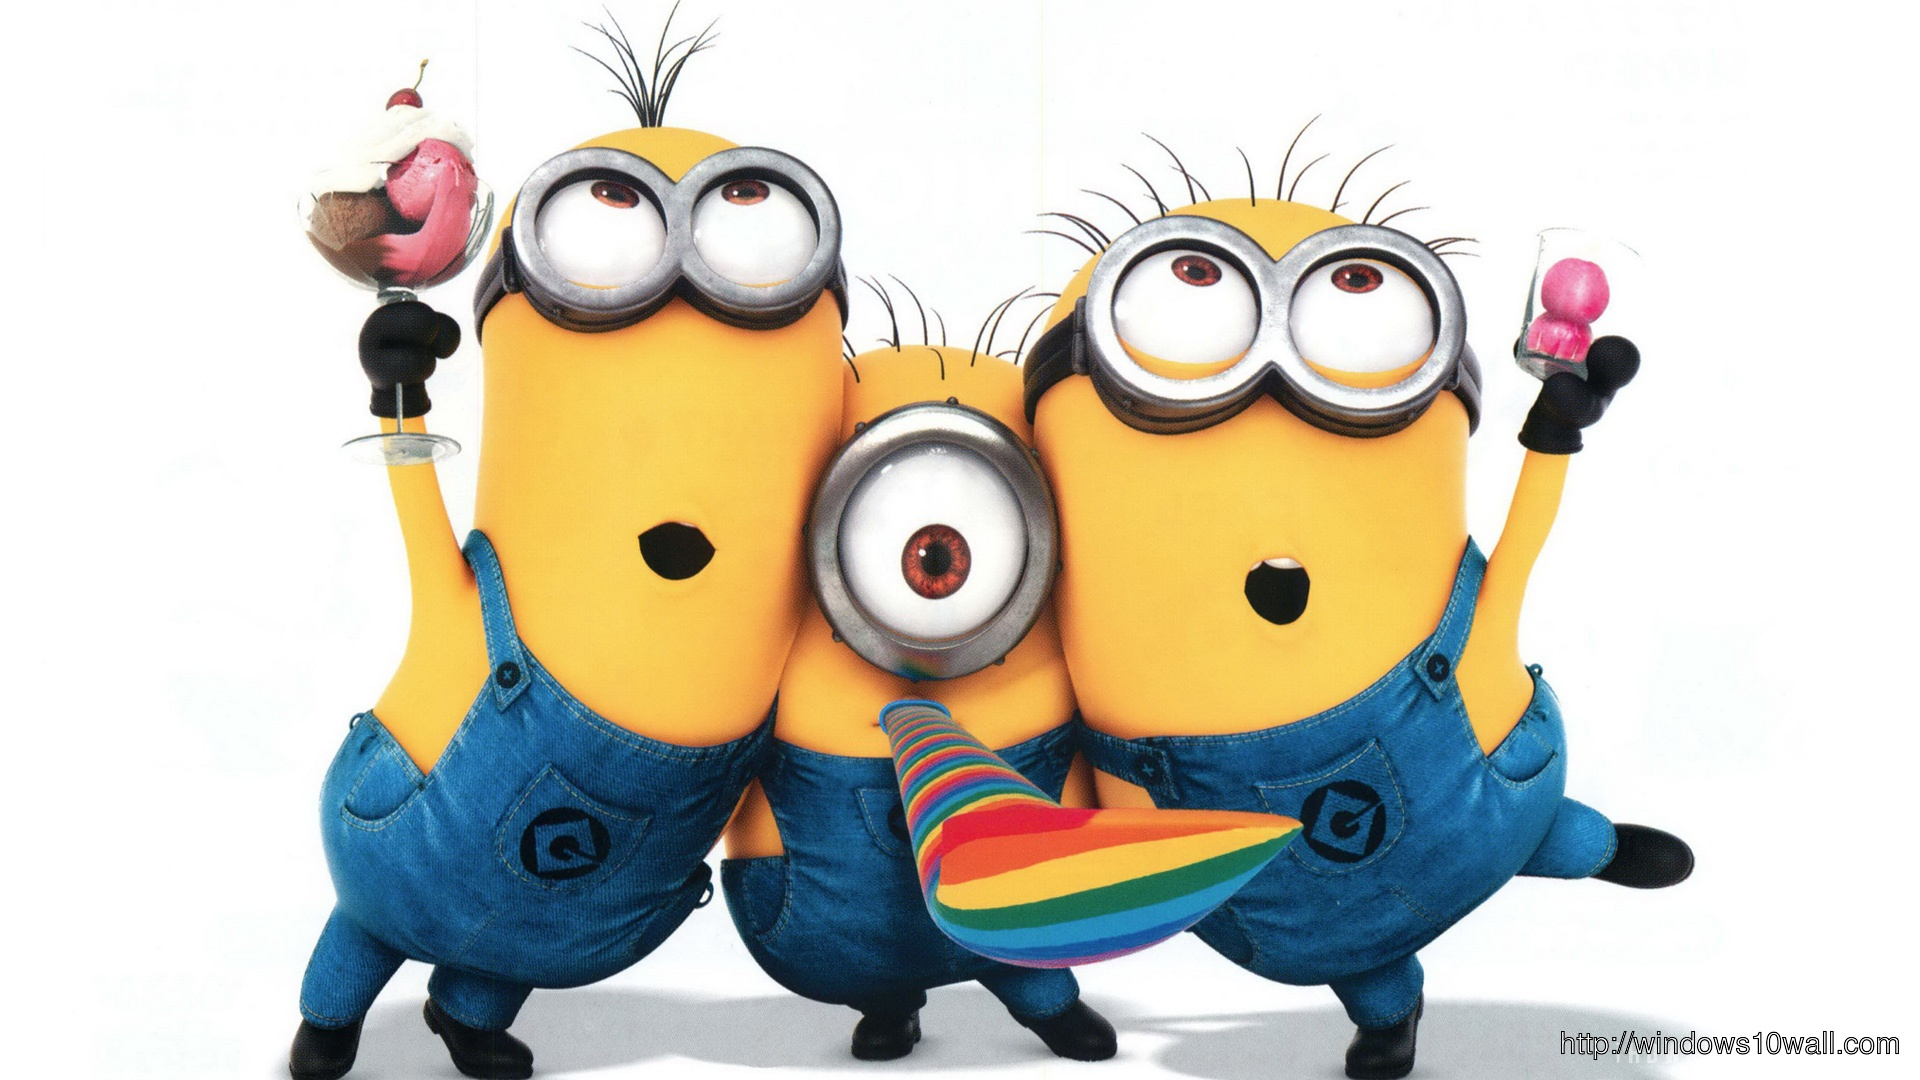 Minions ipad HD Desktop Background Wallpaper